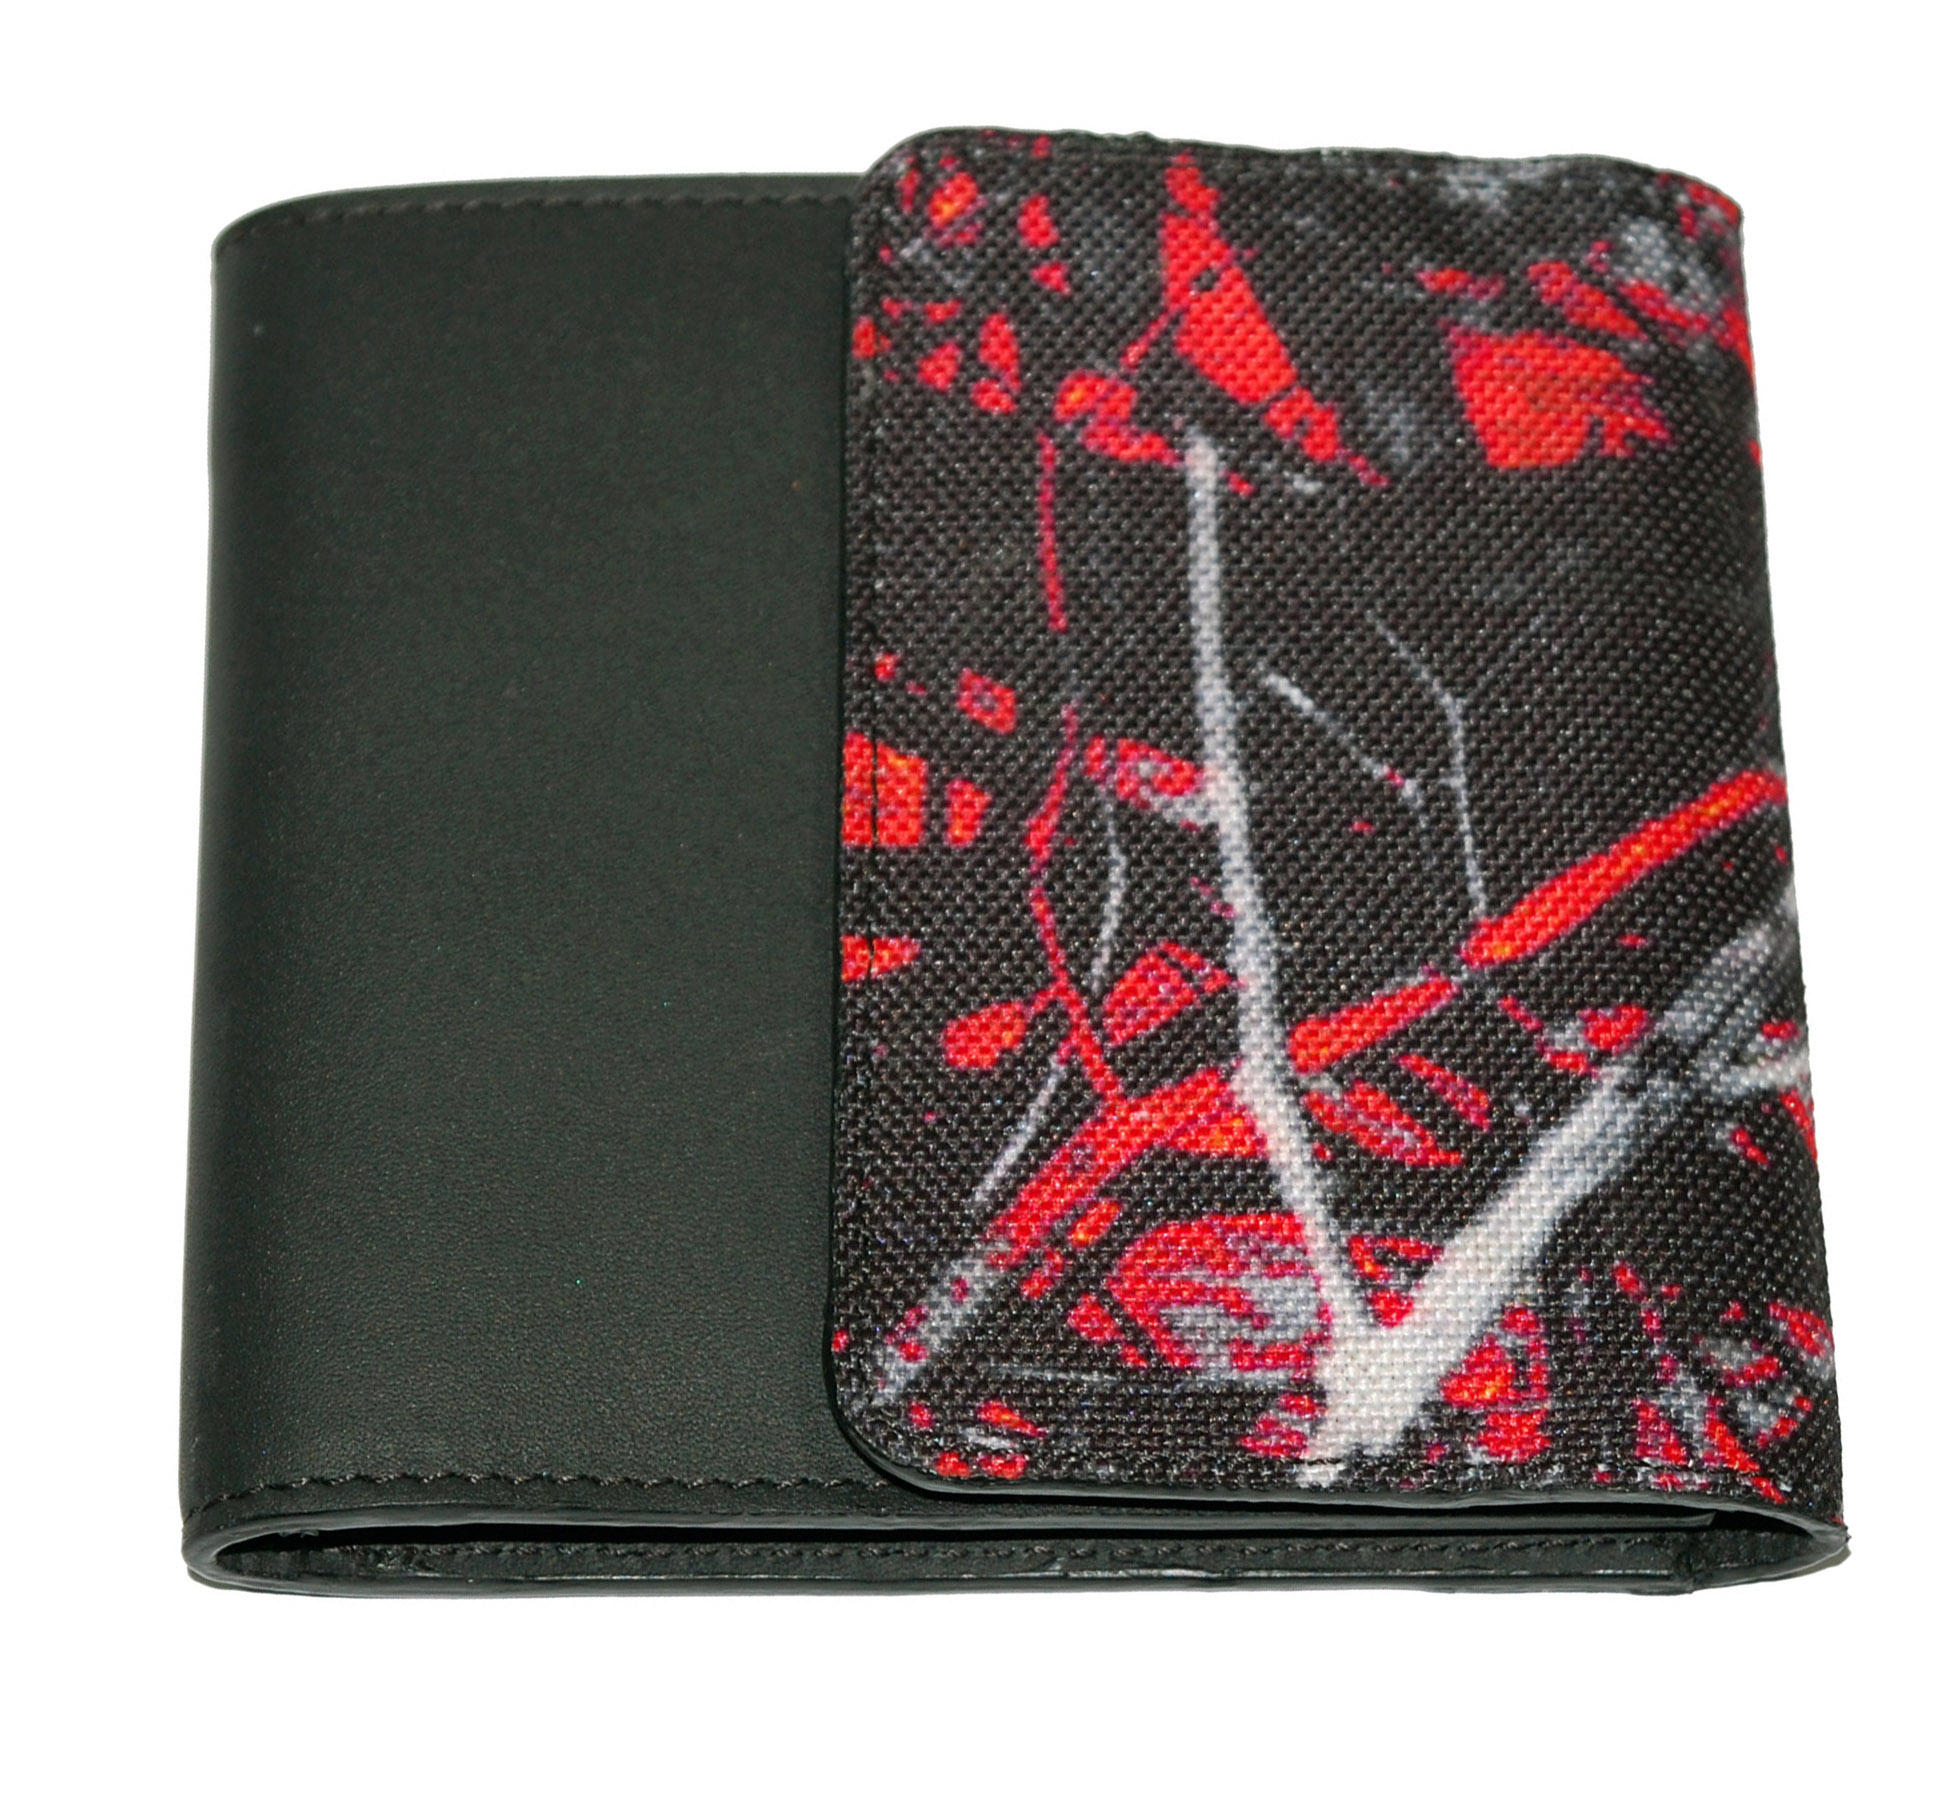 Printed Canvas with Leather Wallet